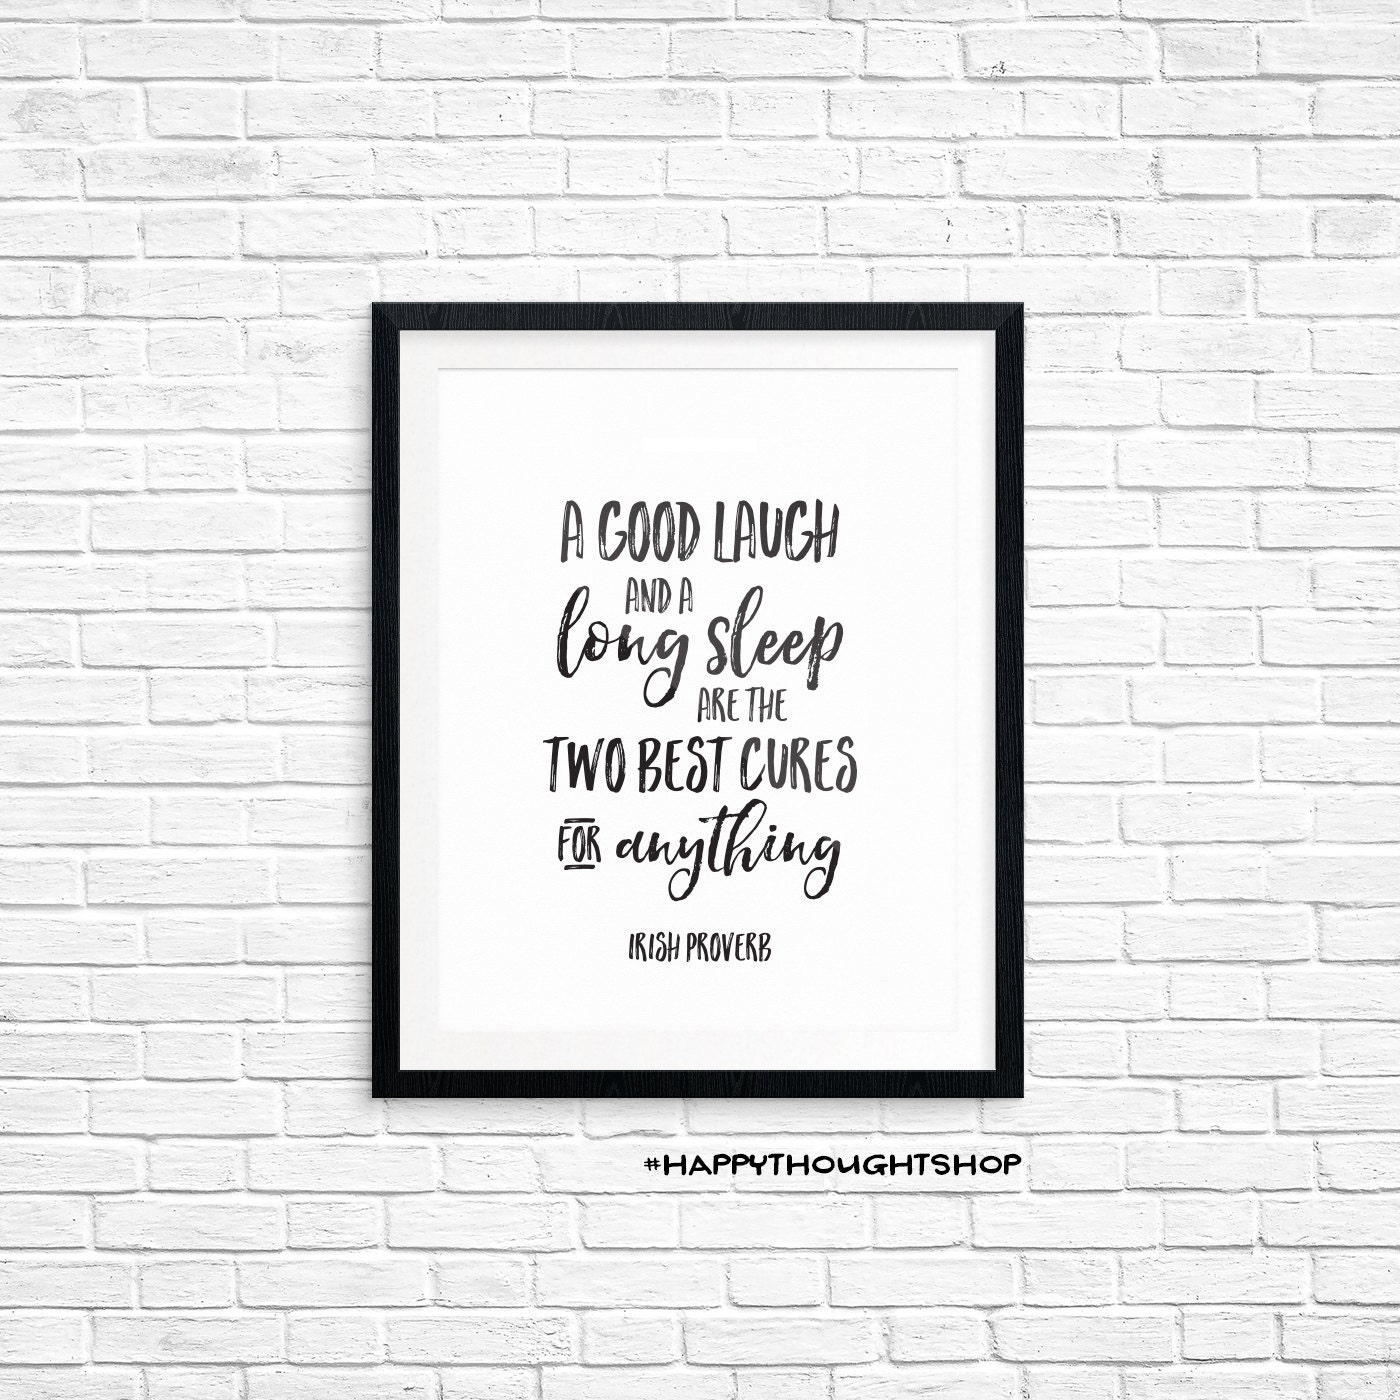 City Of Ember Quotes And Page Number: Printable Art Inspirational Quote A Good Laugh And A Long